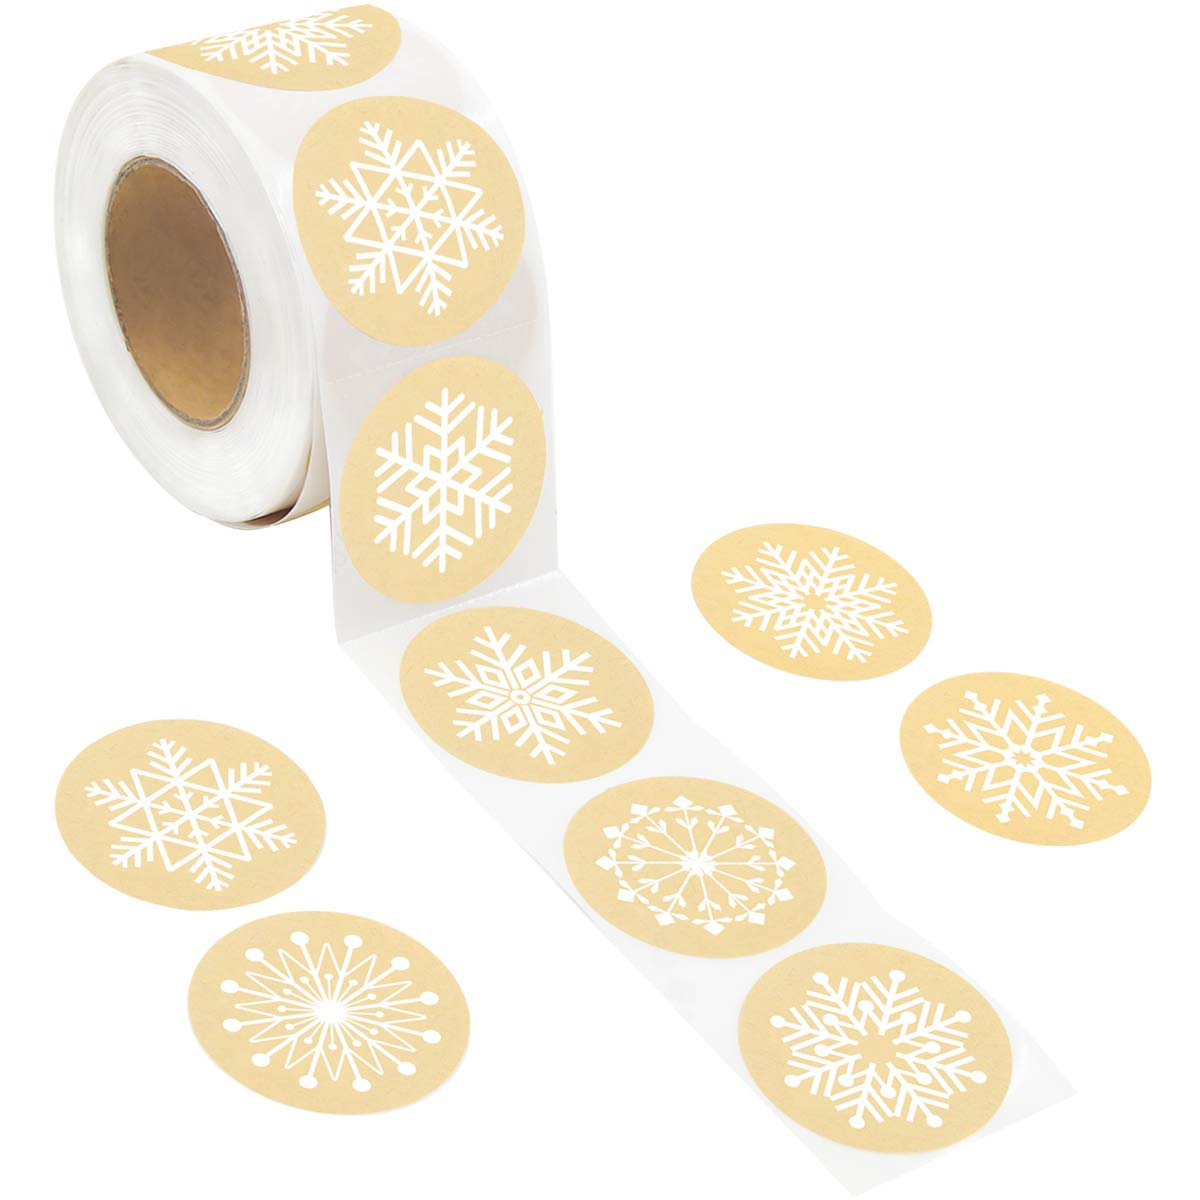 Snowflakes Christmas Stickers Holiday Decorative Presents Stickers 500Pcs Per Roll 8 Different Designs by Fancy Land